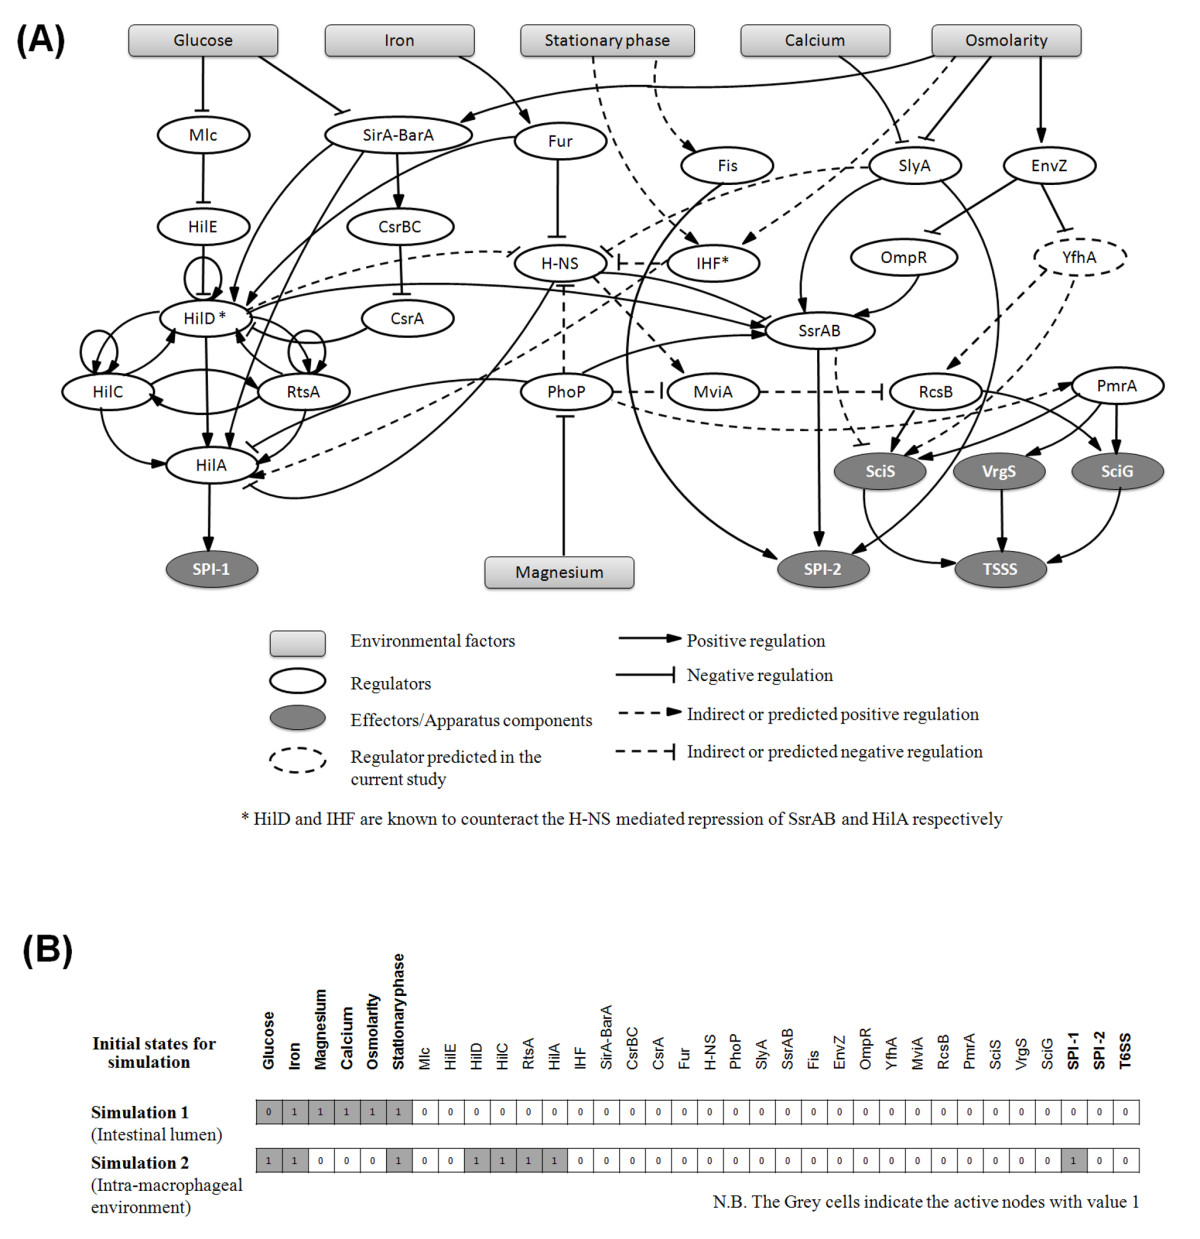 https://static-content.springer.com/image/art%3A10.1186%2F1757-4749-5-28/MediaObjects/13099_2013_Article_108_Fig2_HTML.jpg